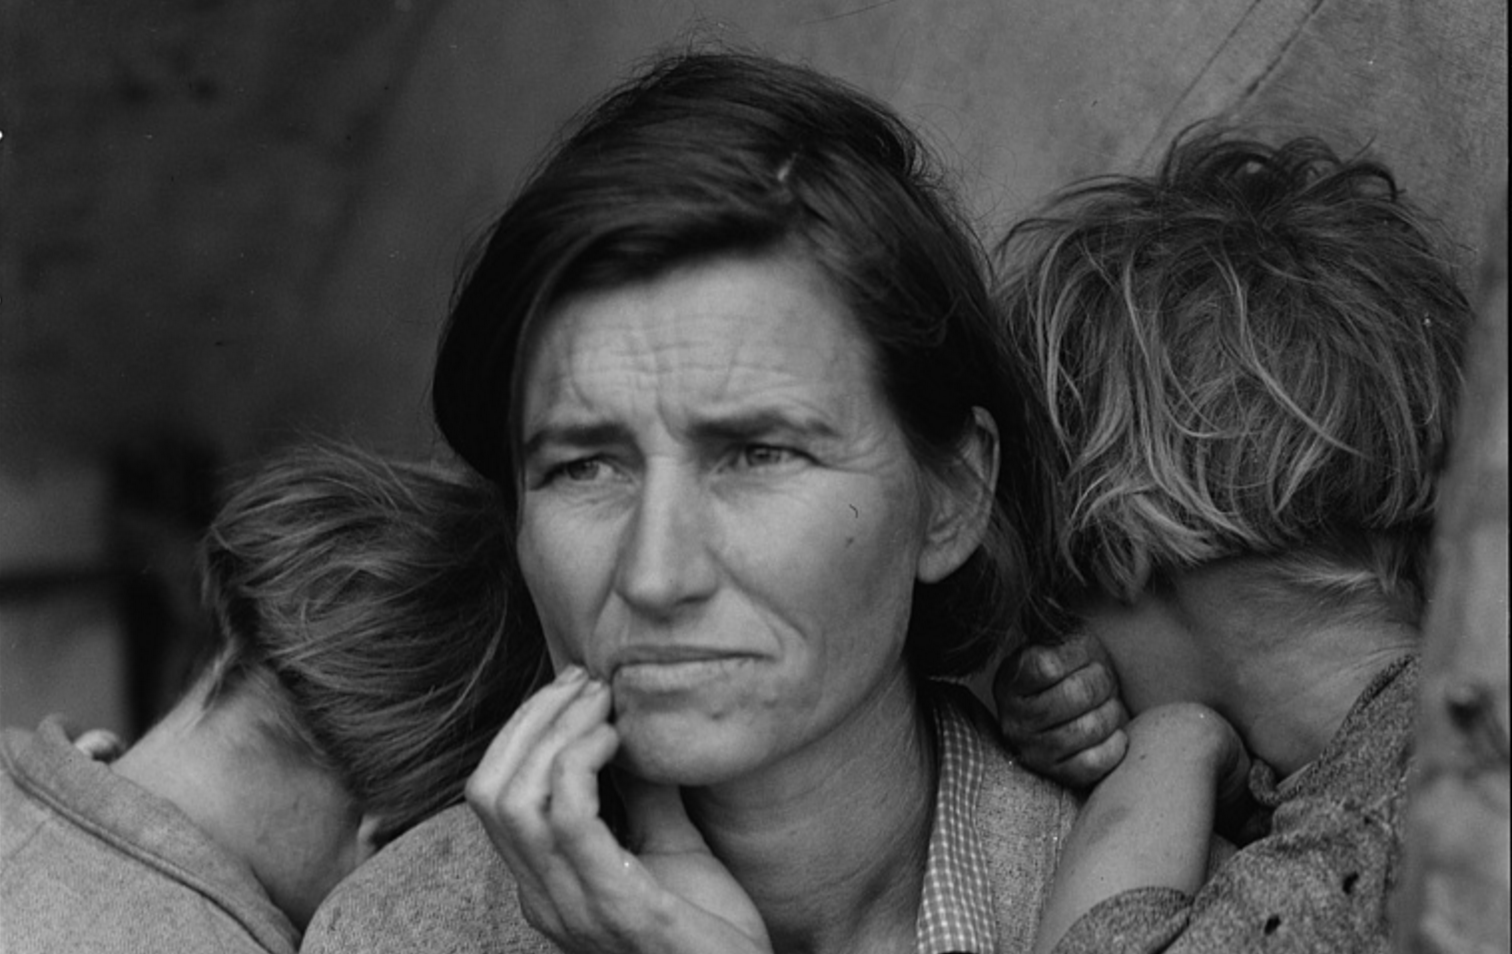 Yale Presents an Archive of 170,000 Photographs Documenting the Great Depression